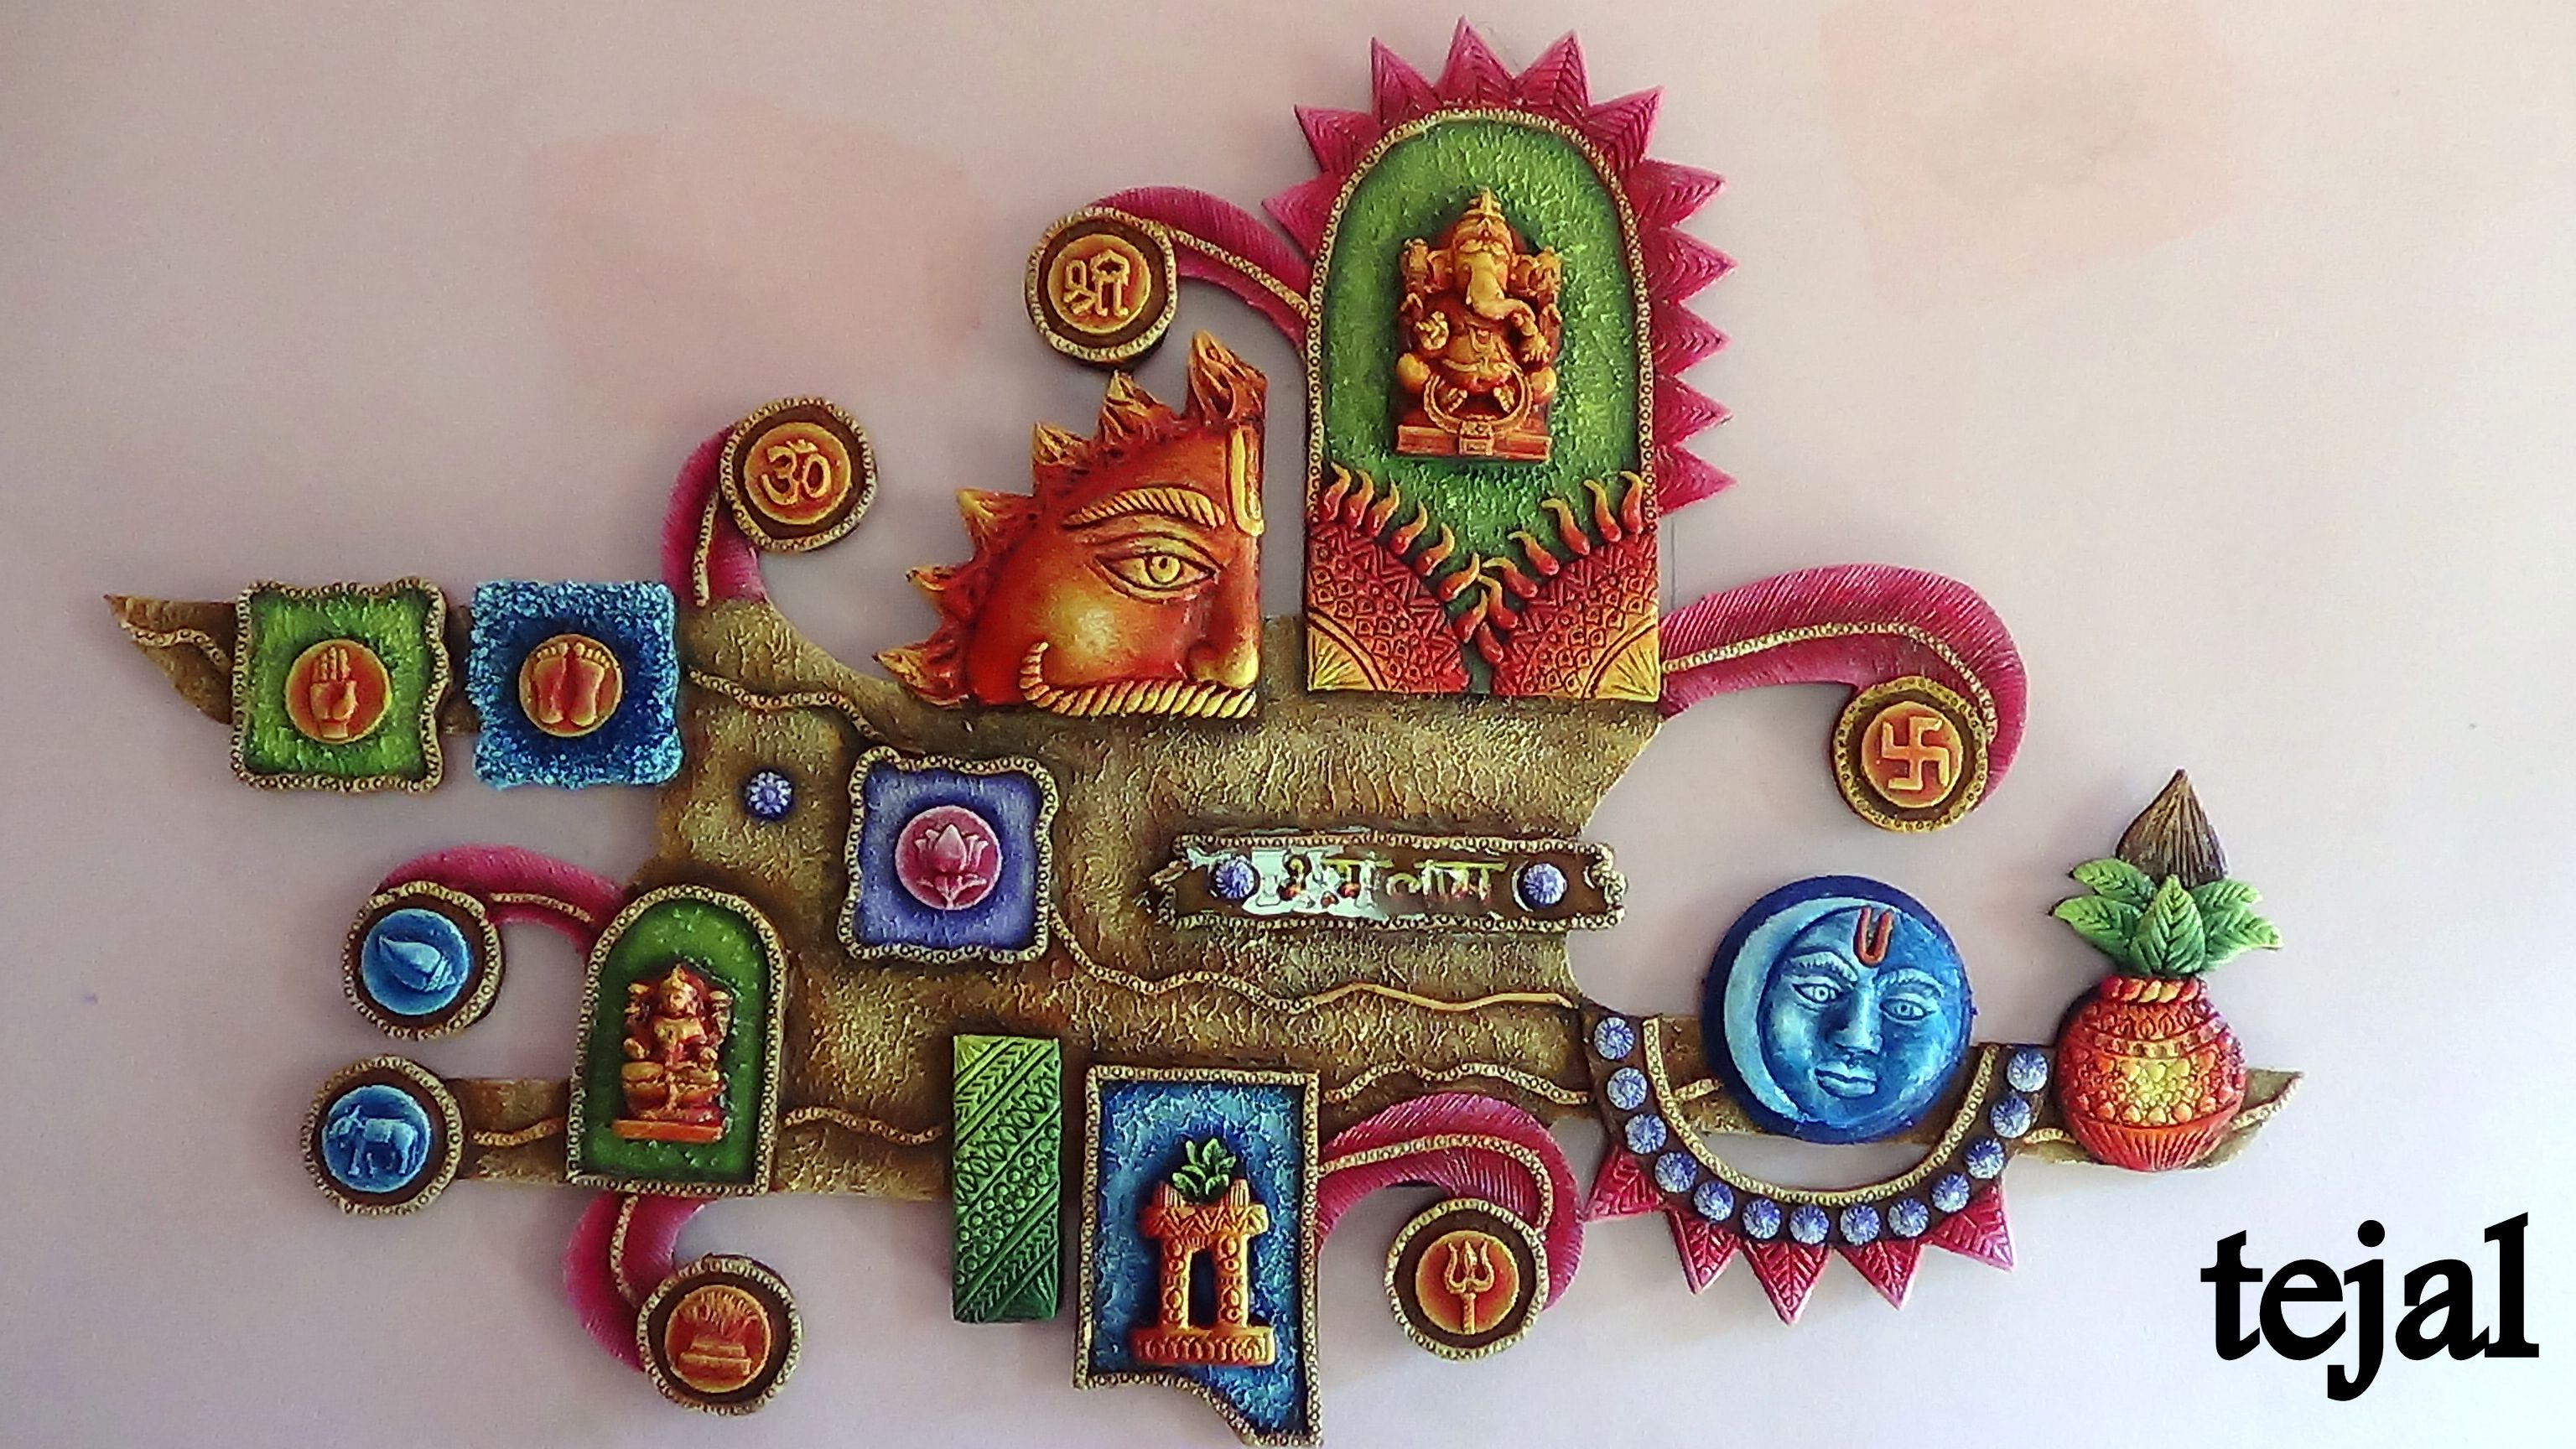 Mural Art To Order Or Inquiries Whts App On 9890592520 Clay Wall Art Mural Wall Art Mural Art